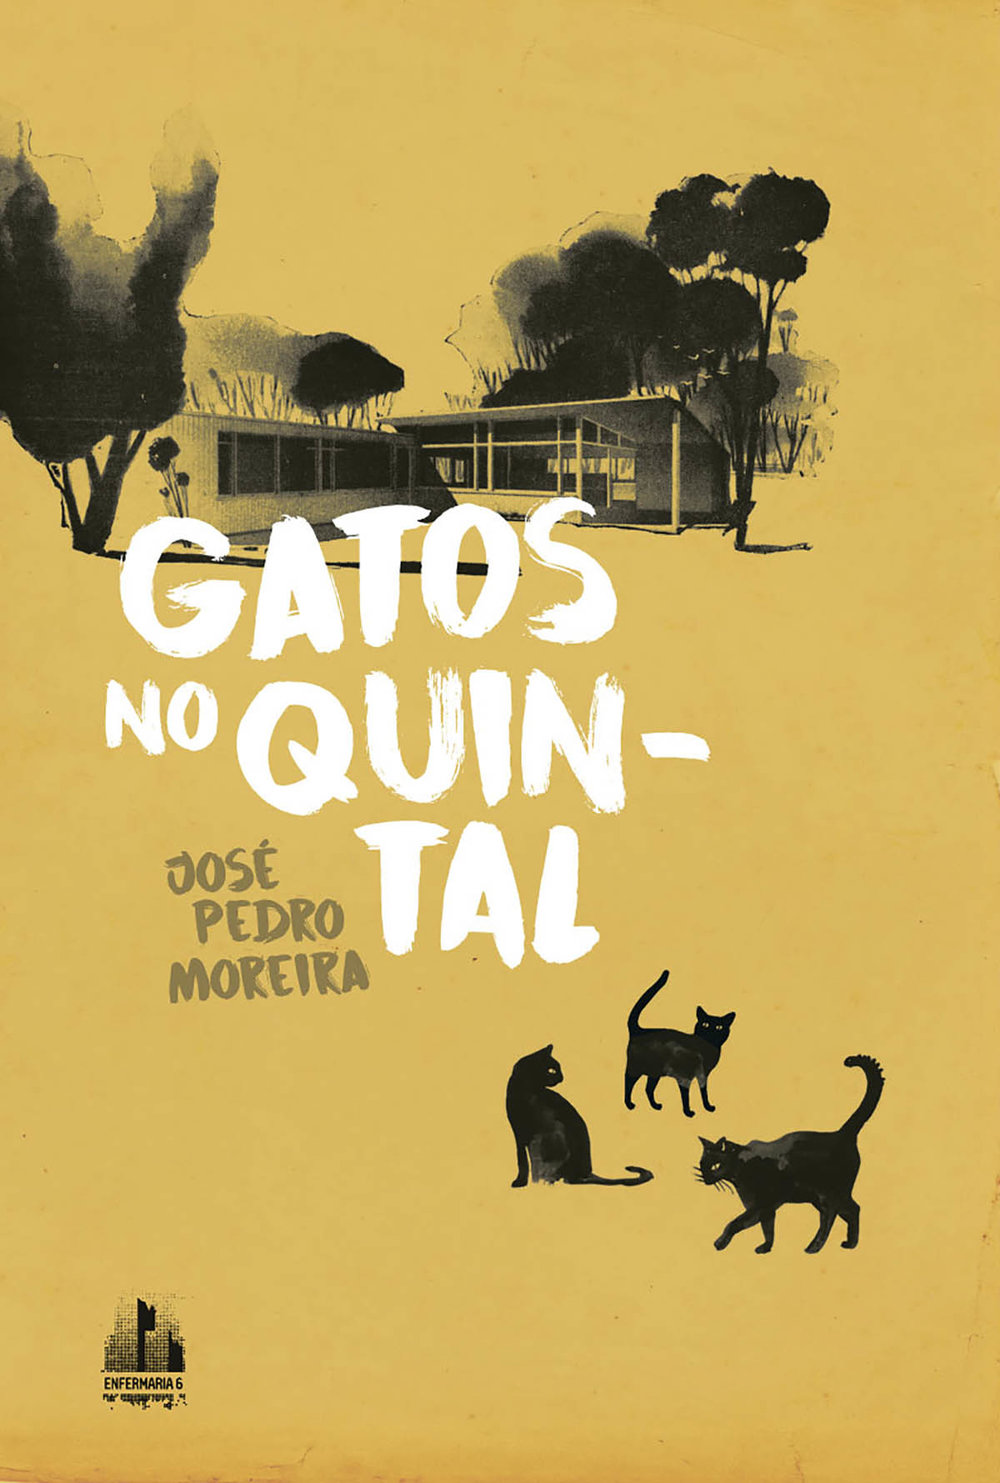 gatos cover ok.jpg